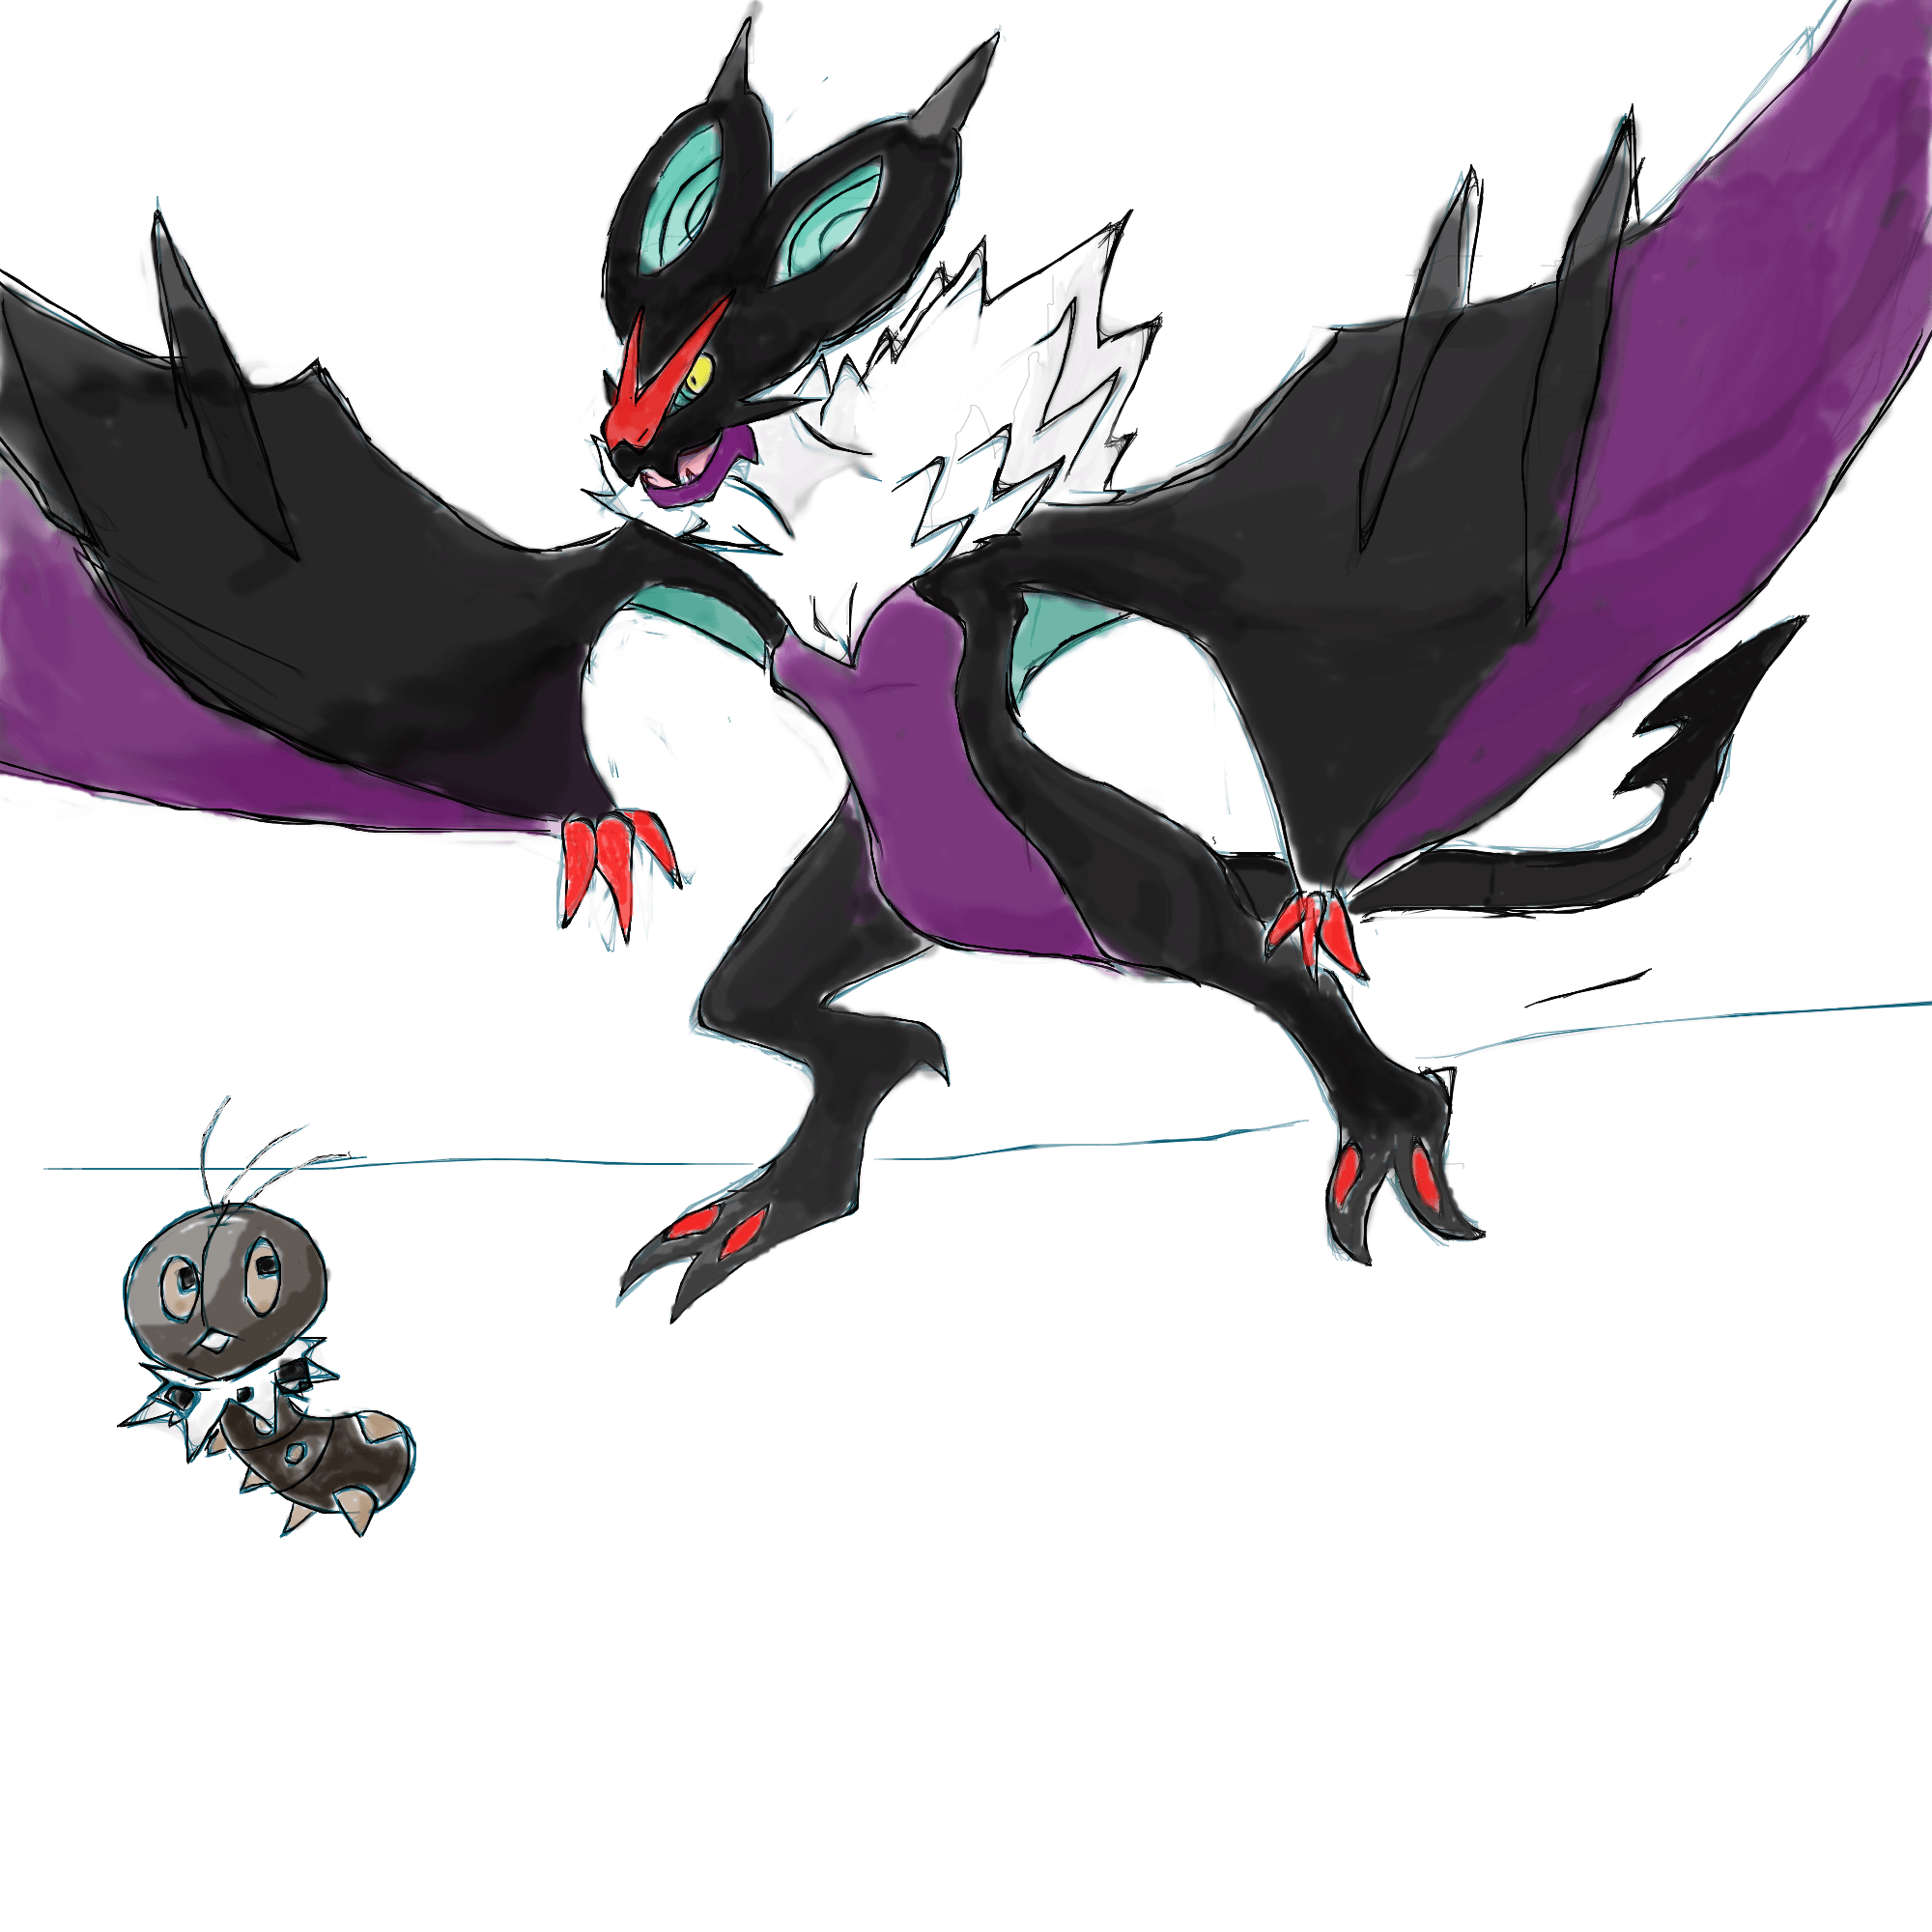 noivern and scatterbug by roblee96 on DeviantArt